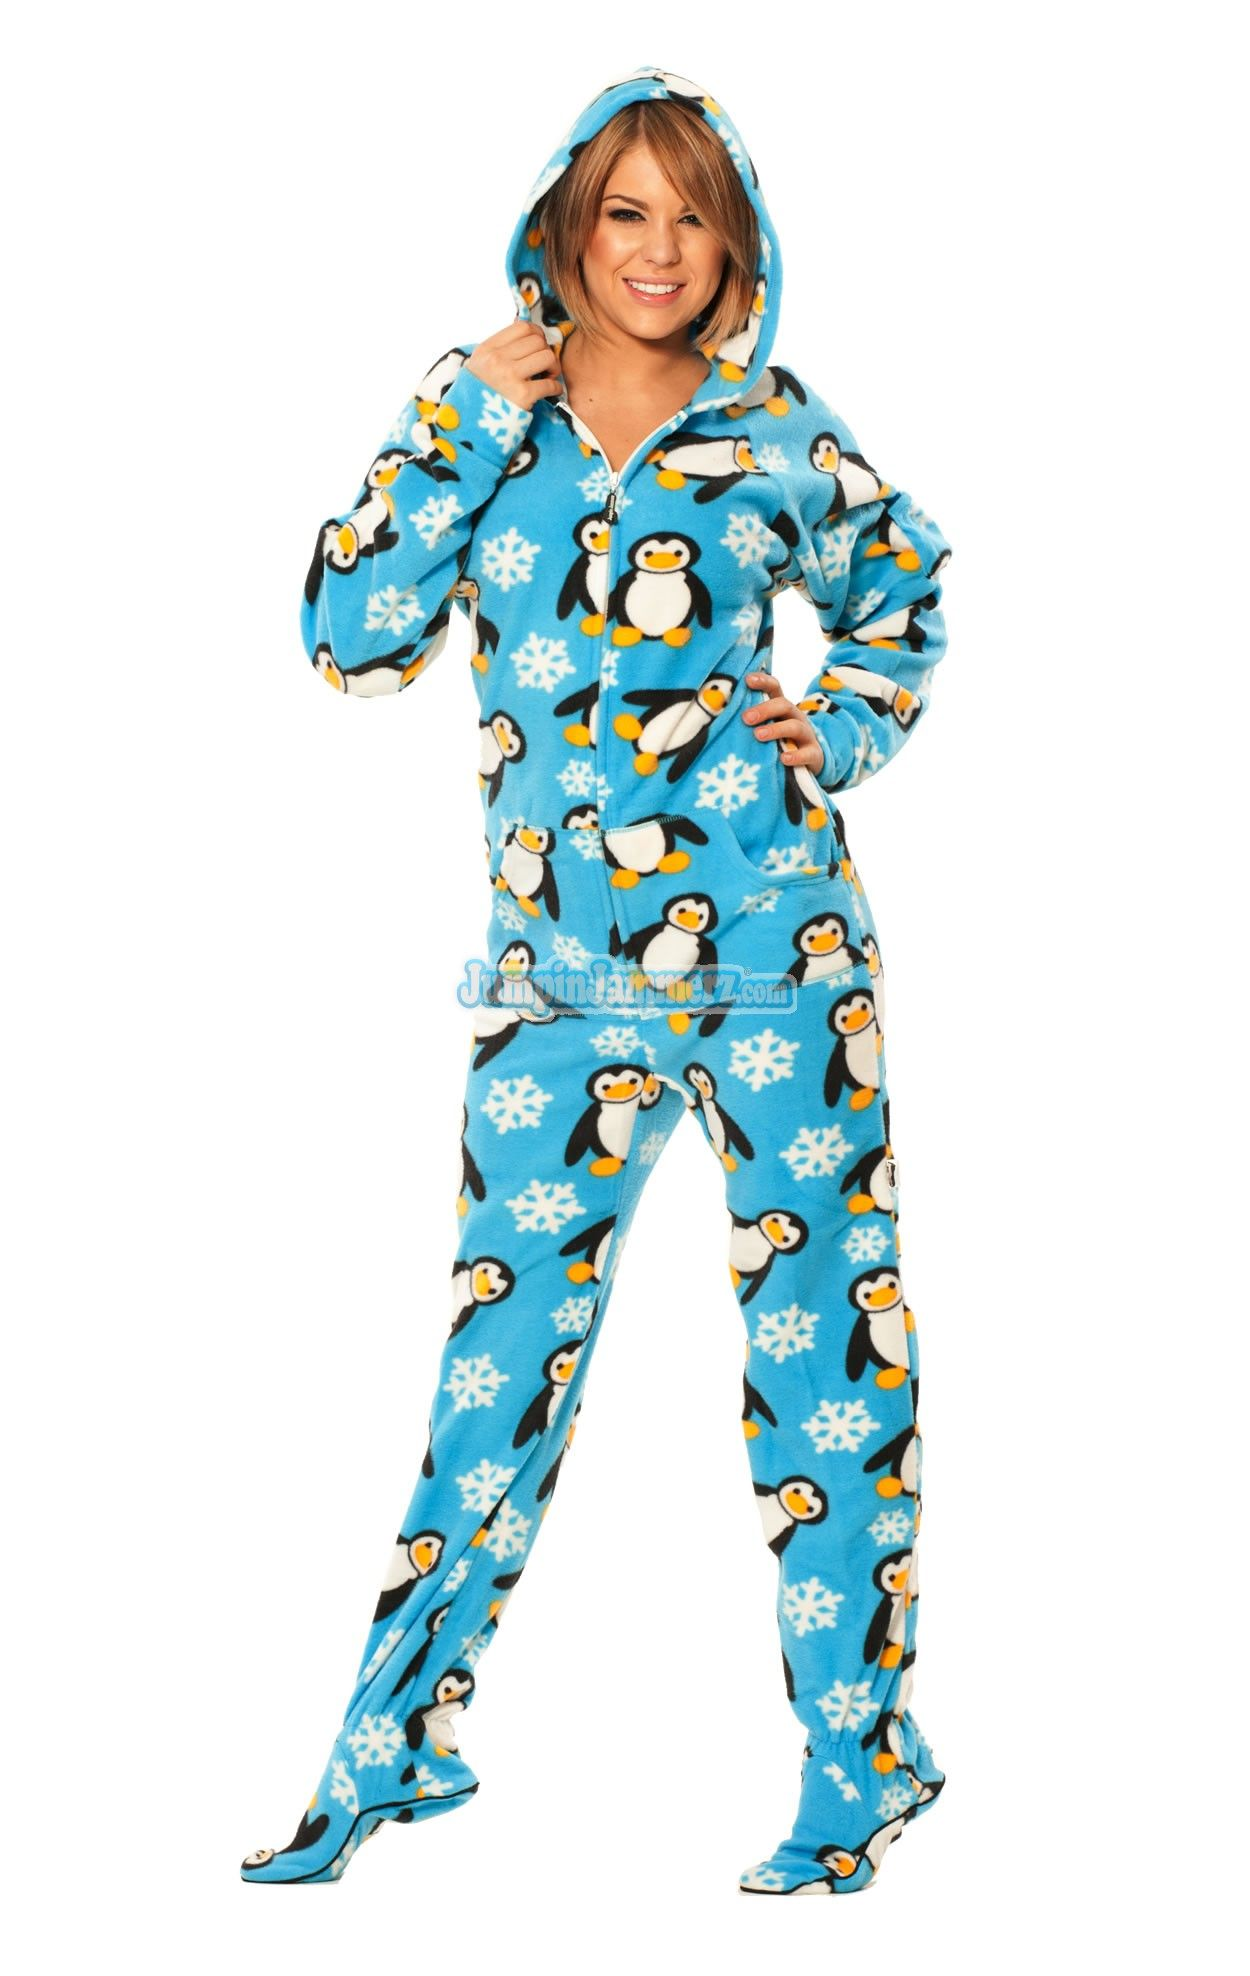 Penguins - Hooded Footed Pajamas - Pajamas Footie PJs Onesies One Piece  Adult Pajamas - JumpinJammerz.com f7c3d8f24